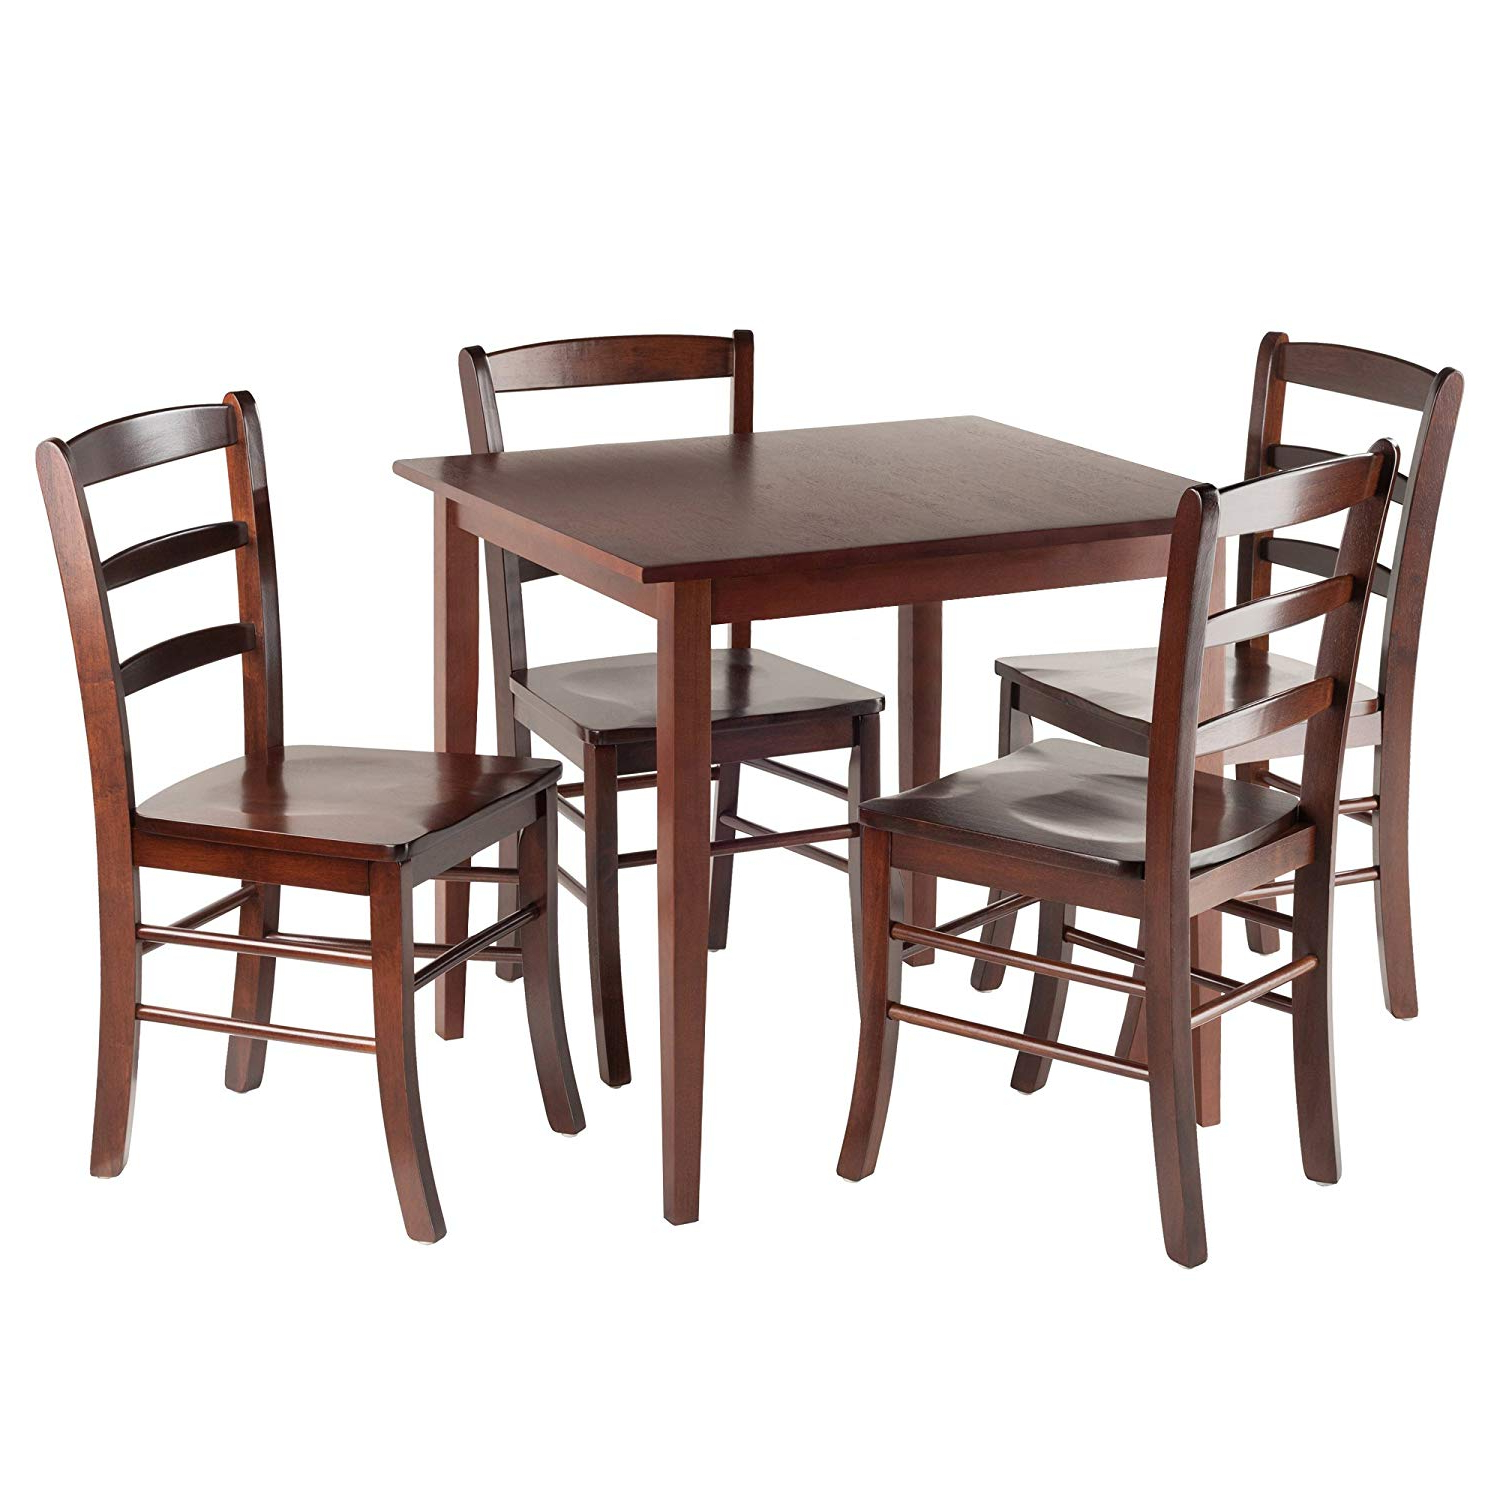 Sundberg 5 Piece Solid Wood Dining Sets With Regard To Popular Winsome Groveland 5 Piece Wood Dining Set, Light Oak Finish (View 17 of 20)